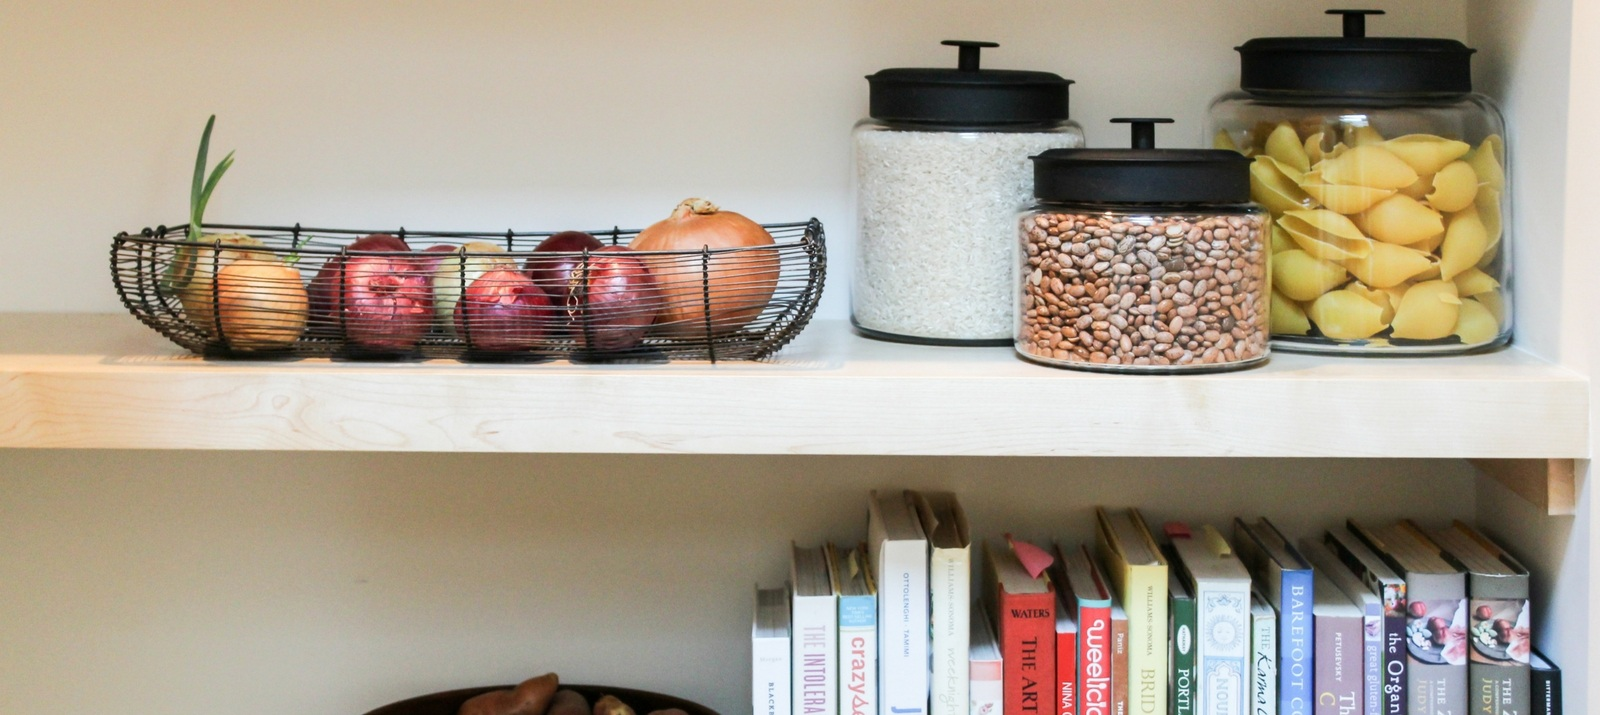 Pantry Organization 5 Eco Friendly Tips For A Masterfully Organized Pantry